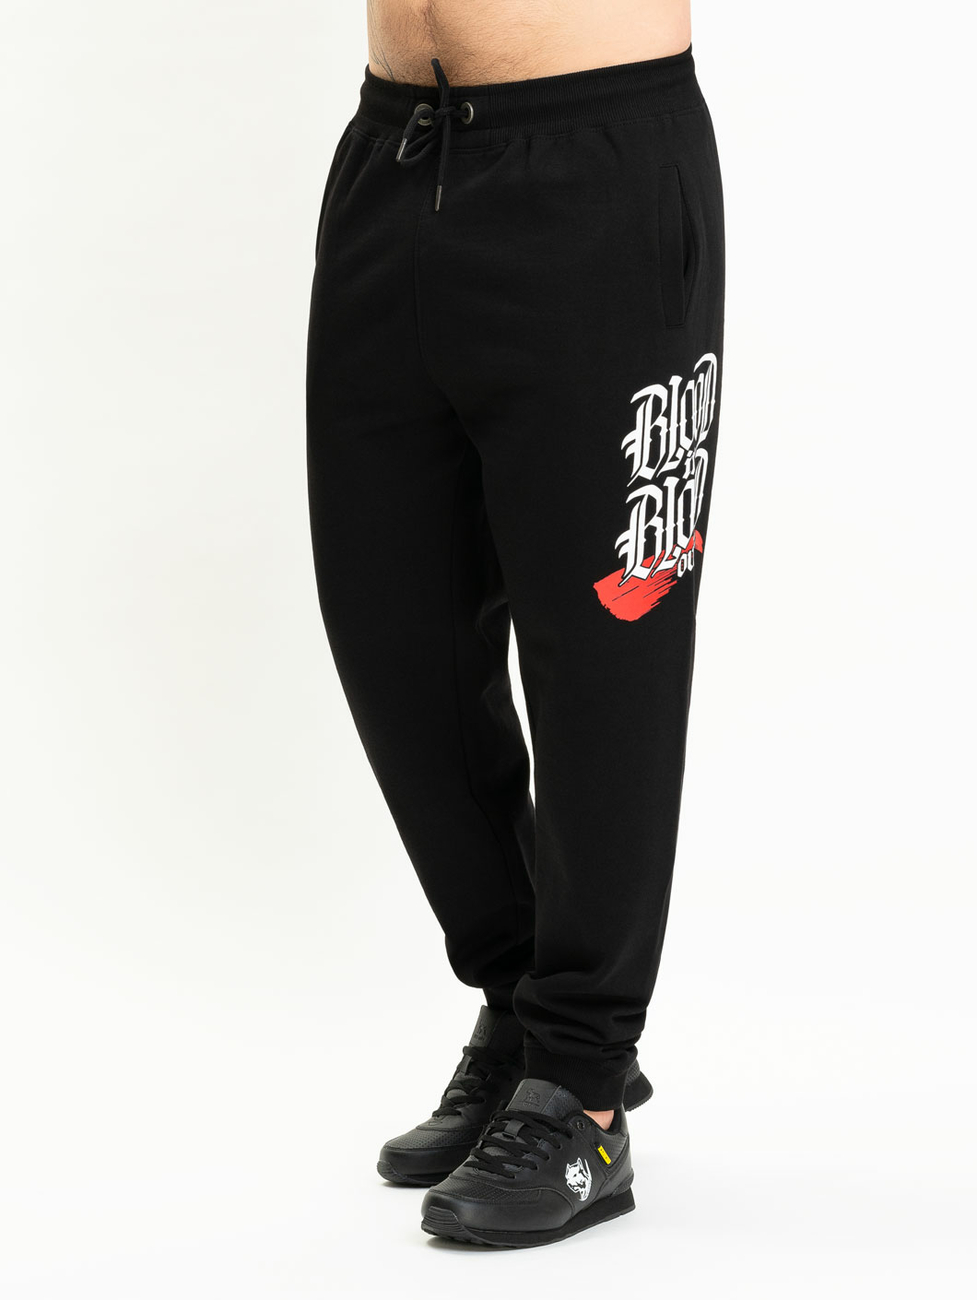 Blood In Blood Out Tranjeros Sweatpants S